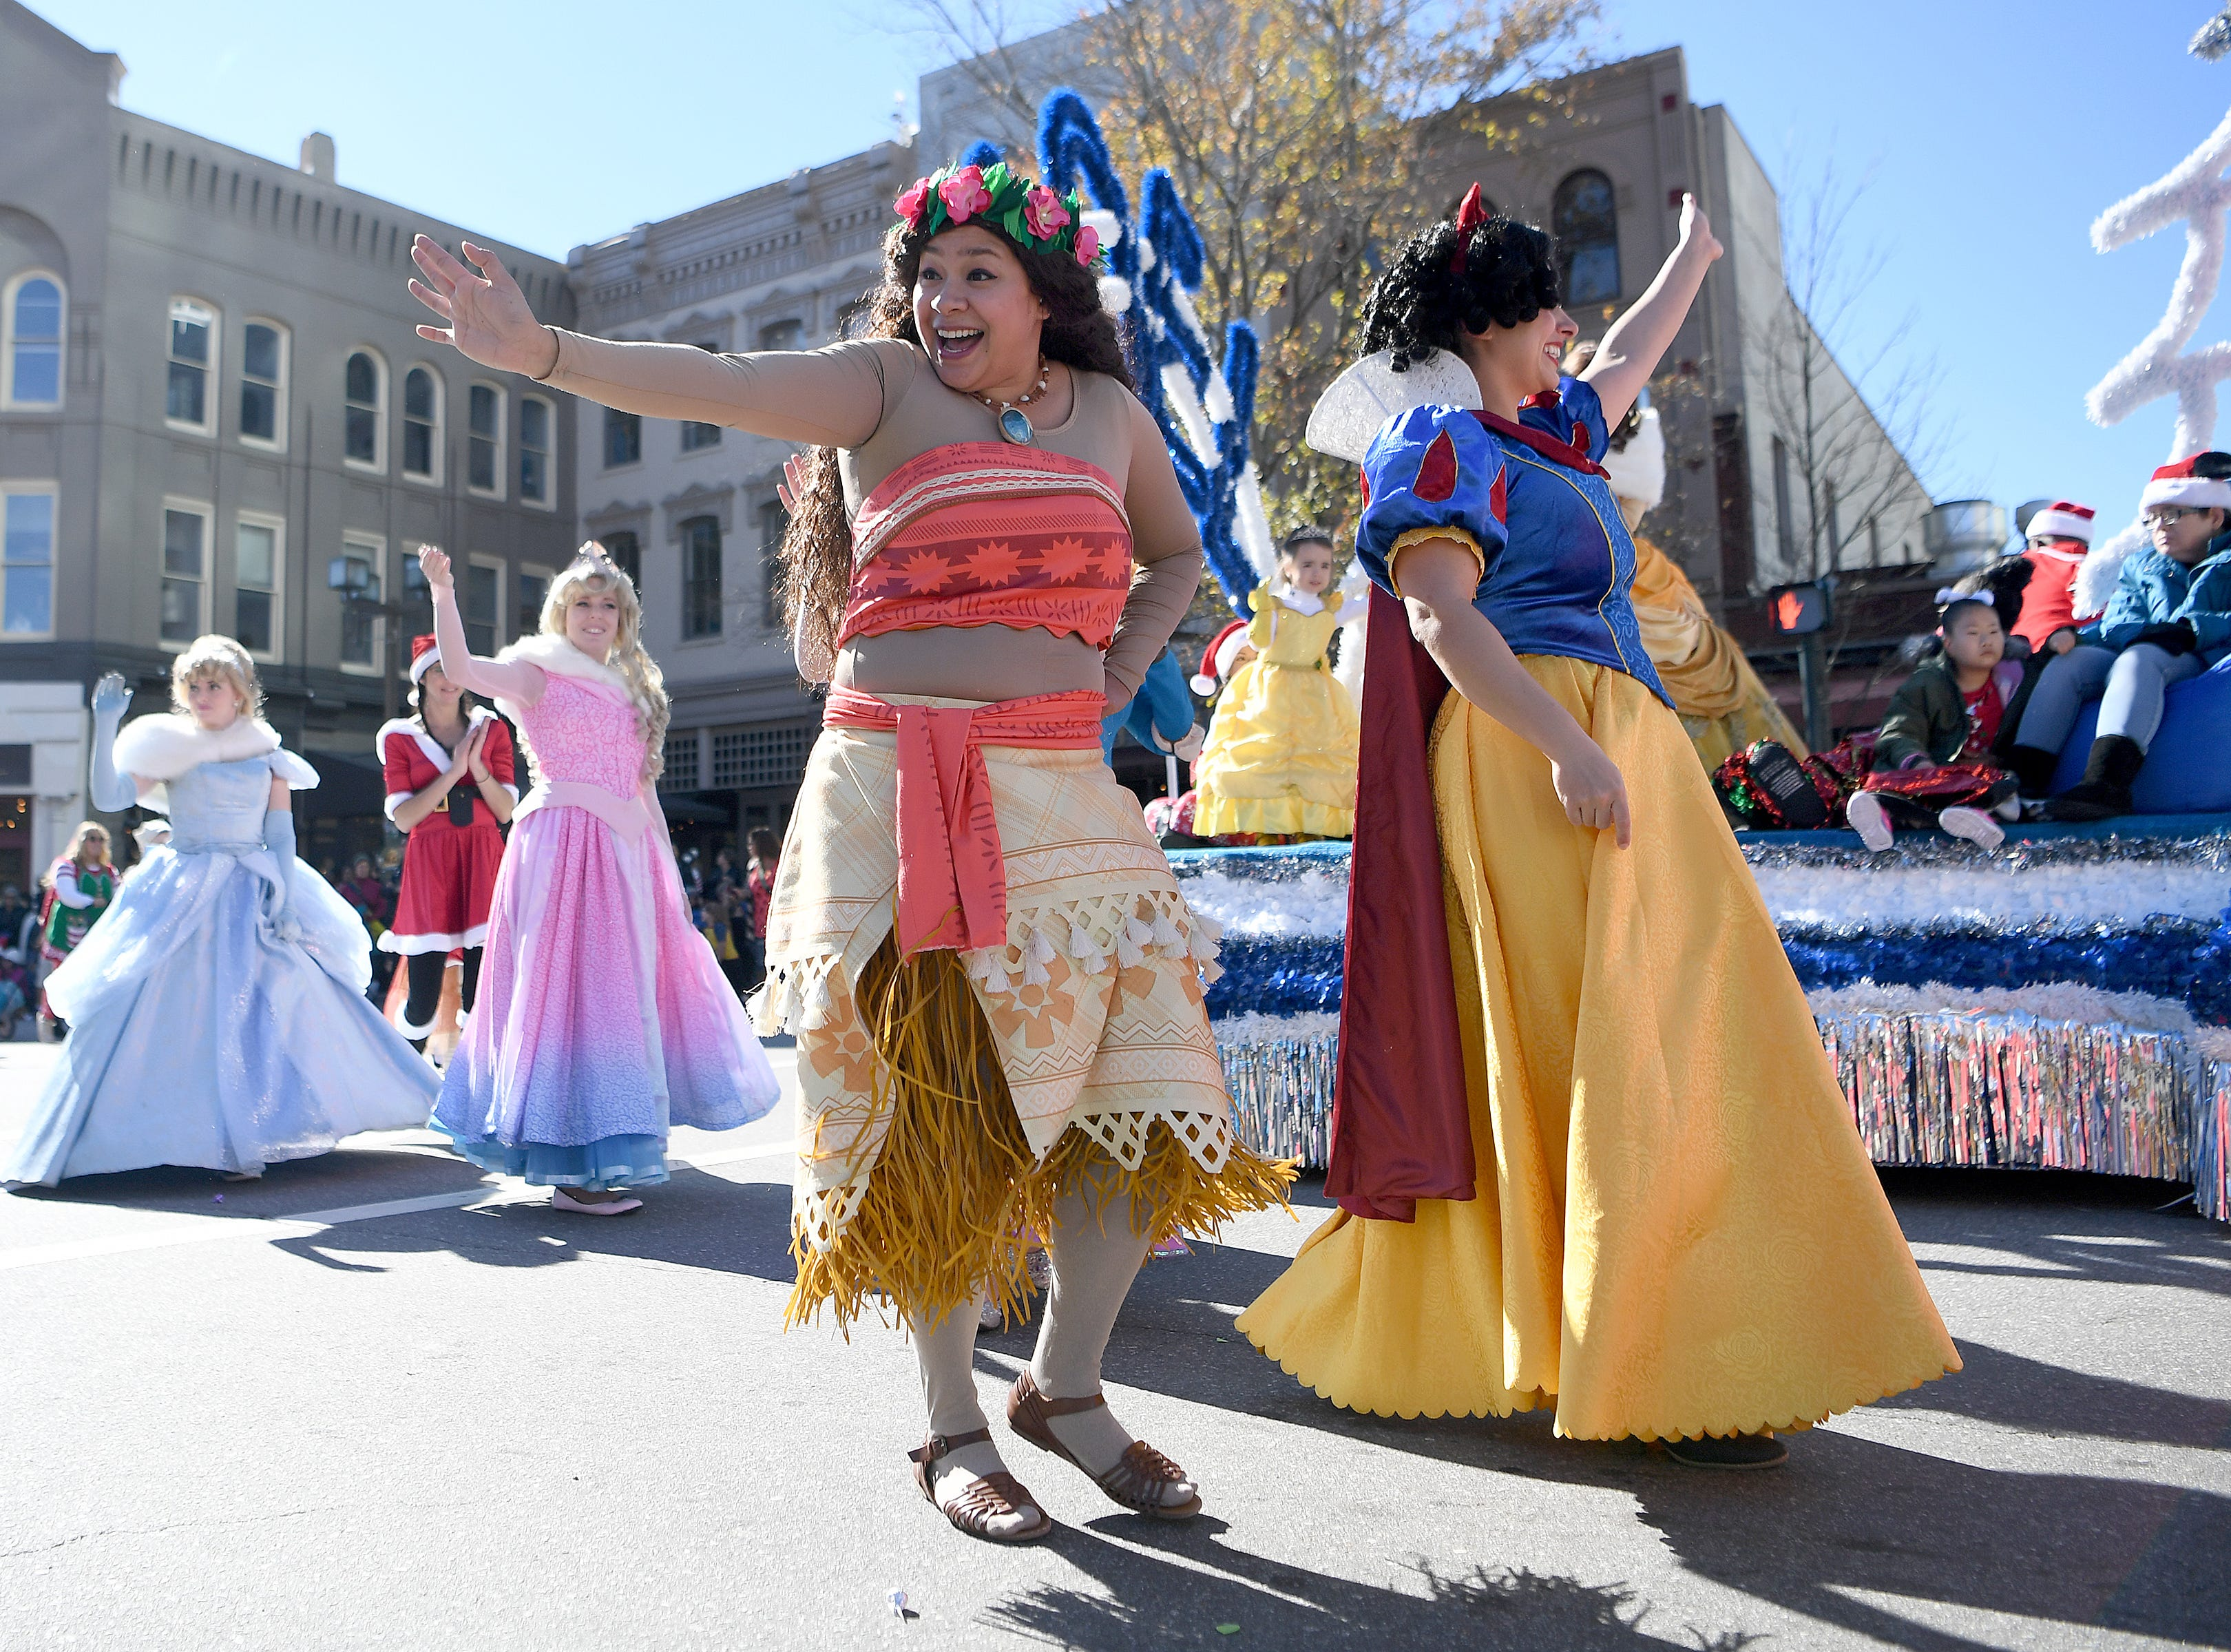 Women dressed as princesses with Songs Sealed Delivered party entertainment wave to the crowd before they perform for the judges at the corner of Biltmore and Patton Avenues during the 2018 Asheville Holiday Parade on Nov. 17, 2018. More than 100 entries walked through the streets lined with spectators in the parade this year.